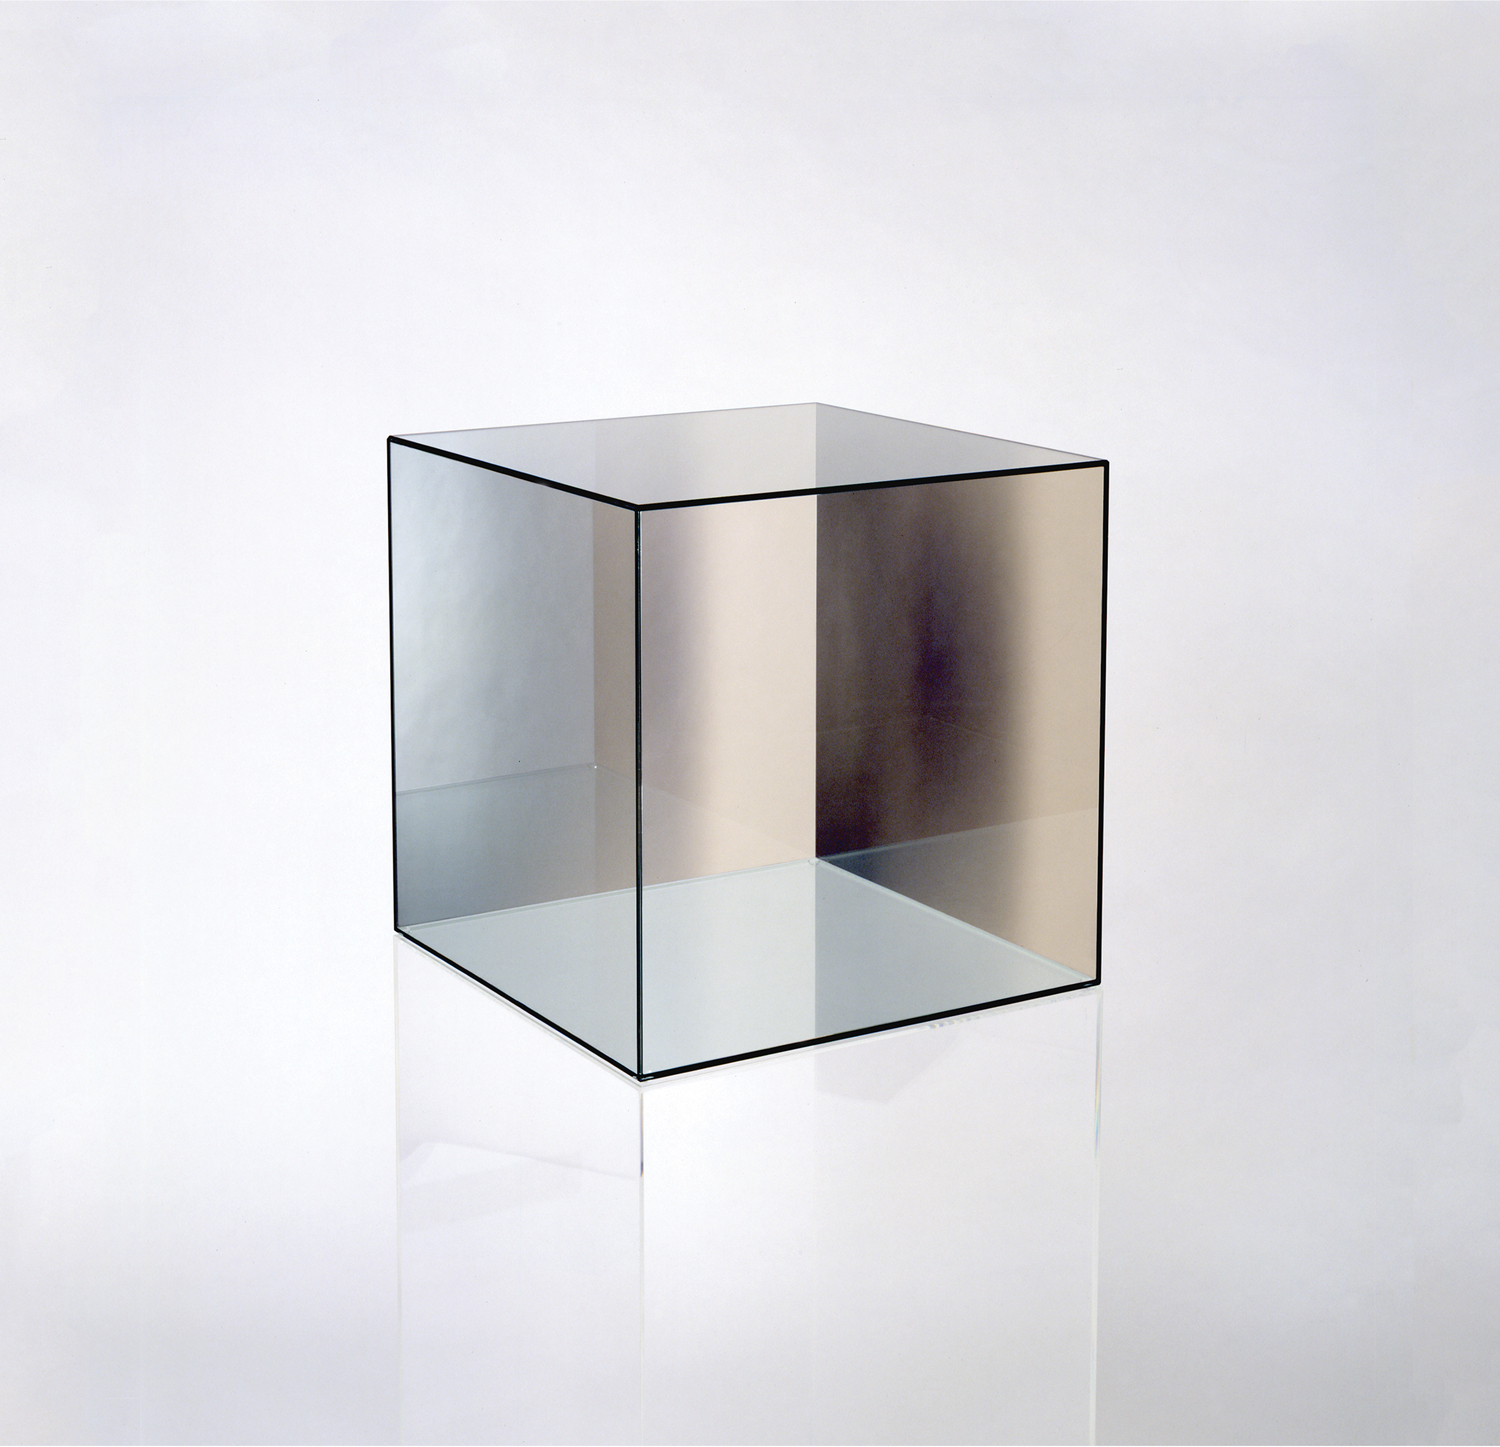 CUBE #32 by Larry Bell courtesy Larry Bell Inc